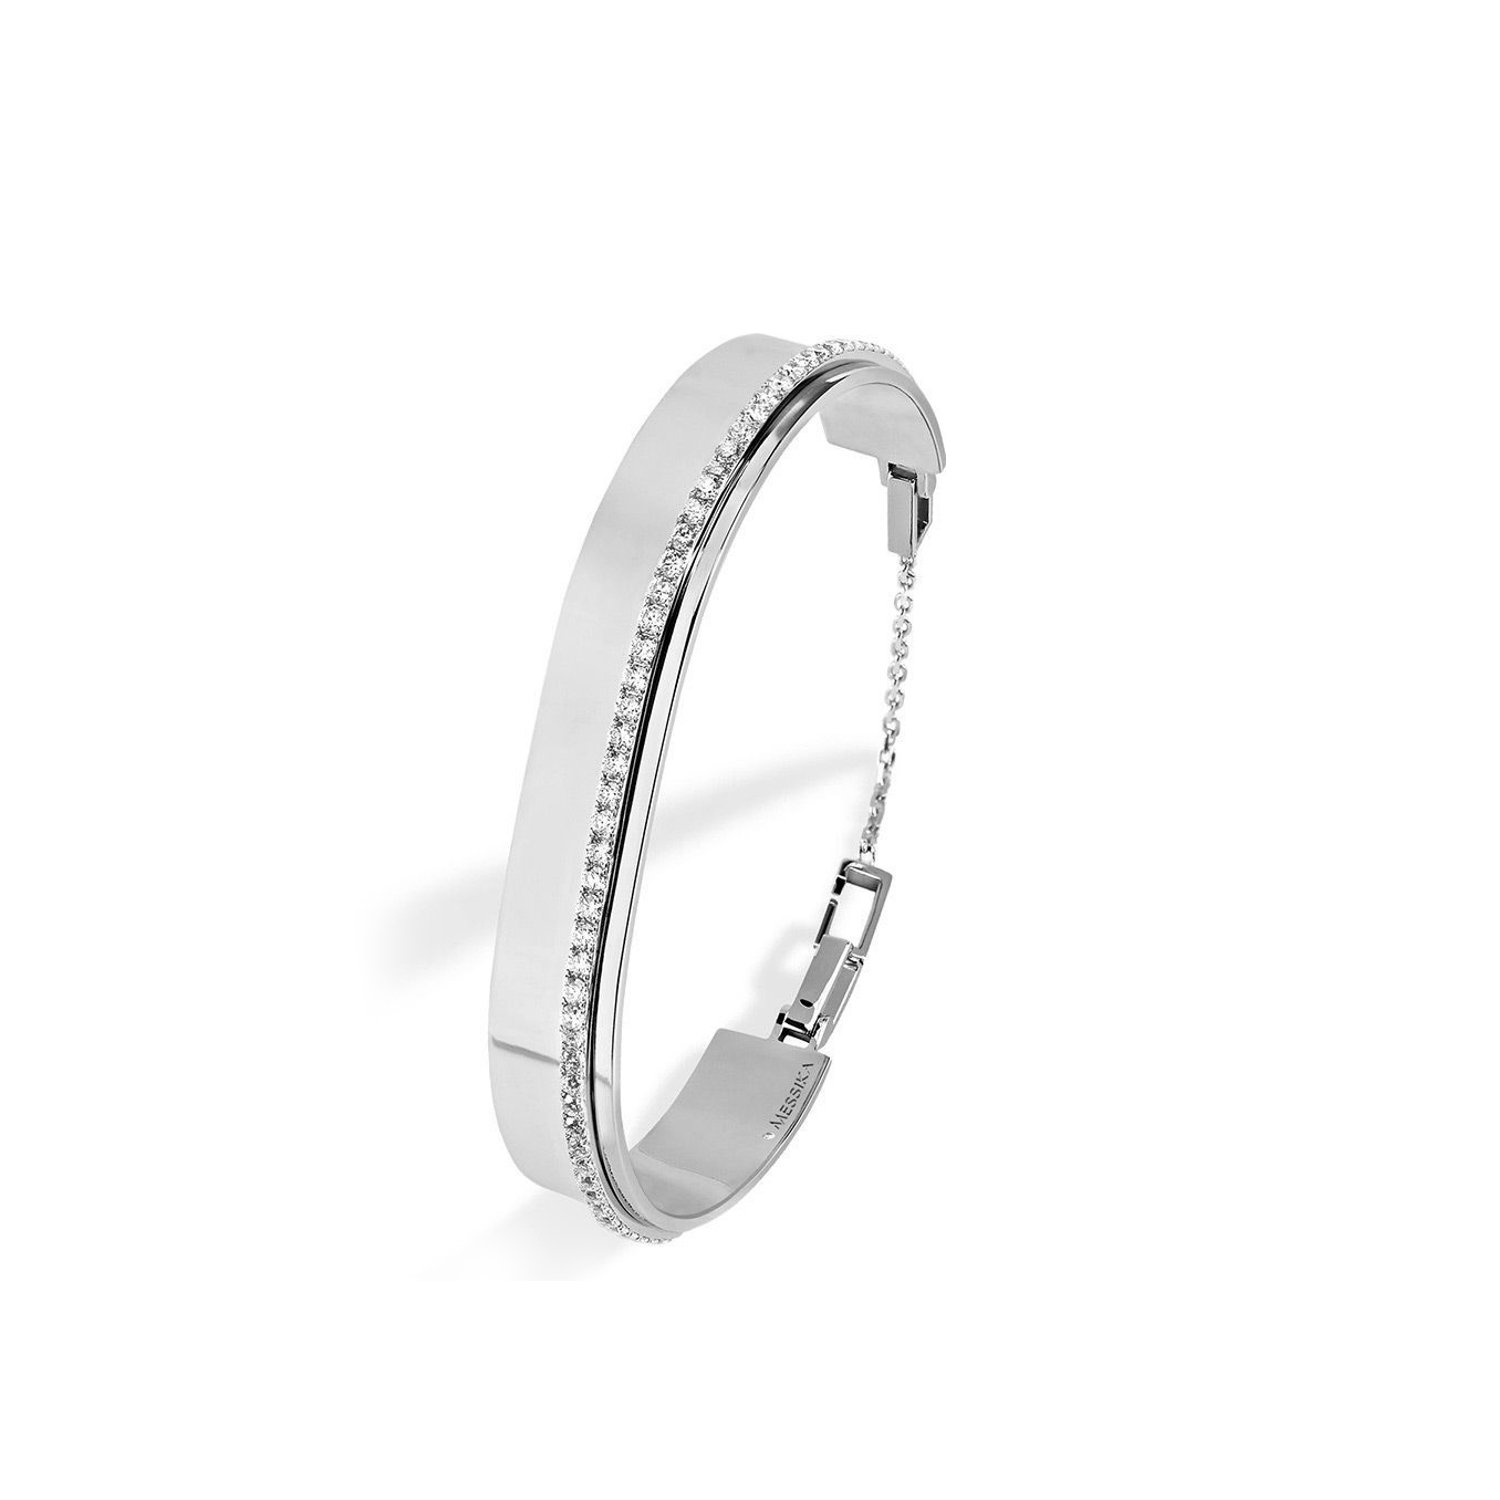 Bracelet Messika Kate Bangle en Or blanc et Diamant